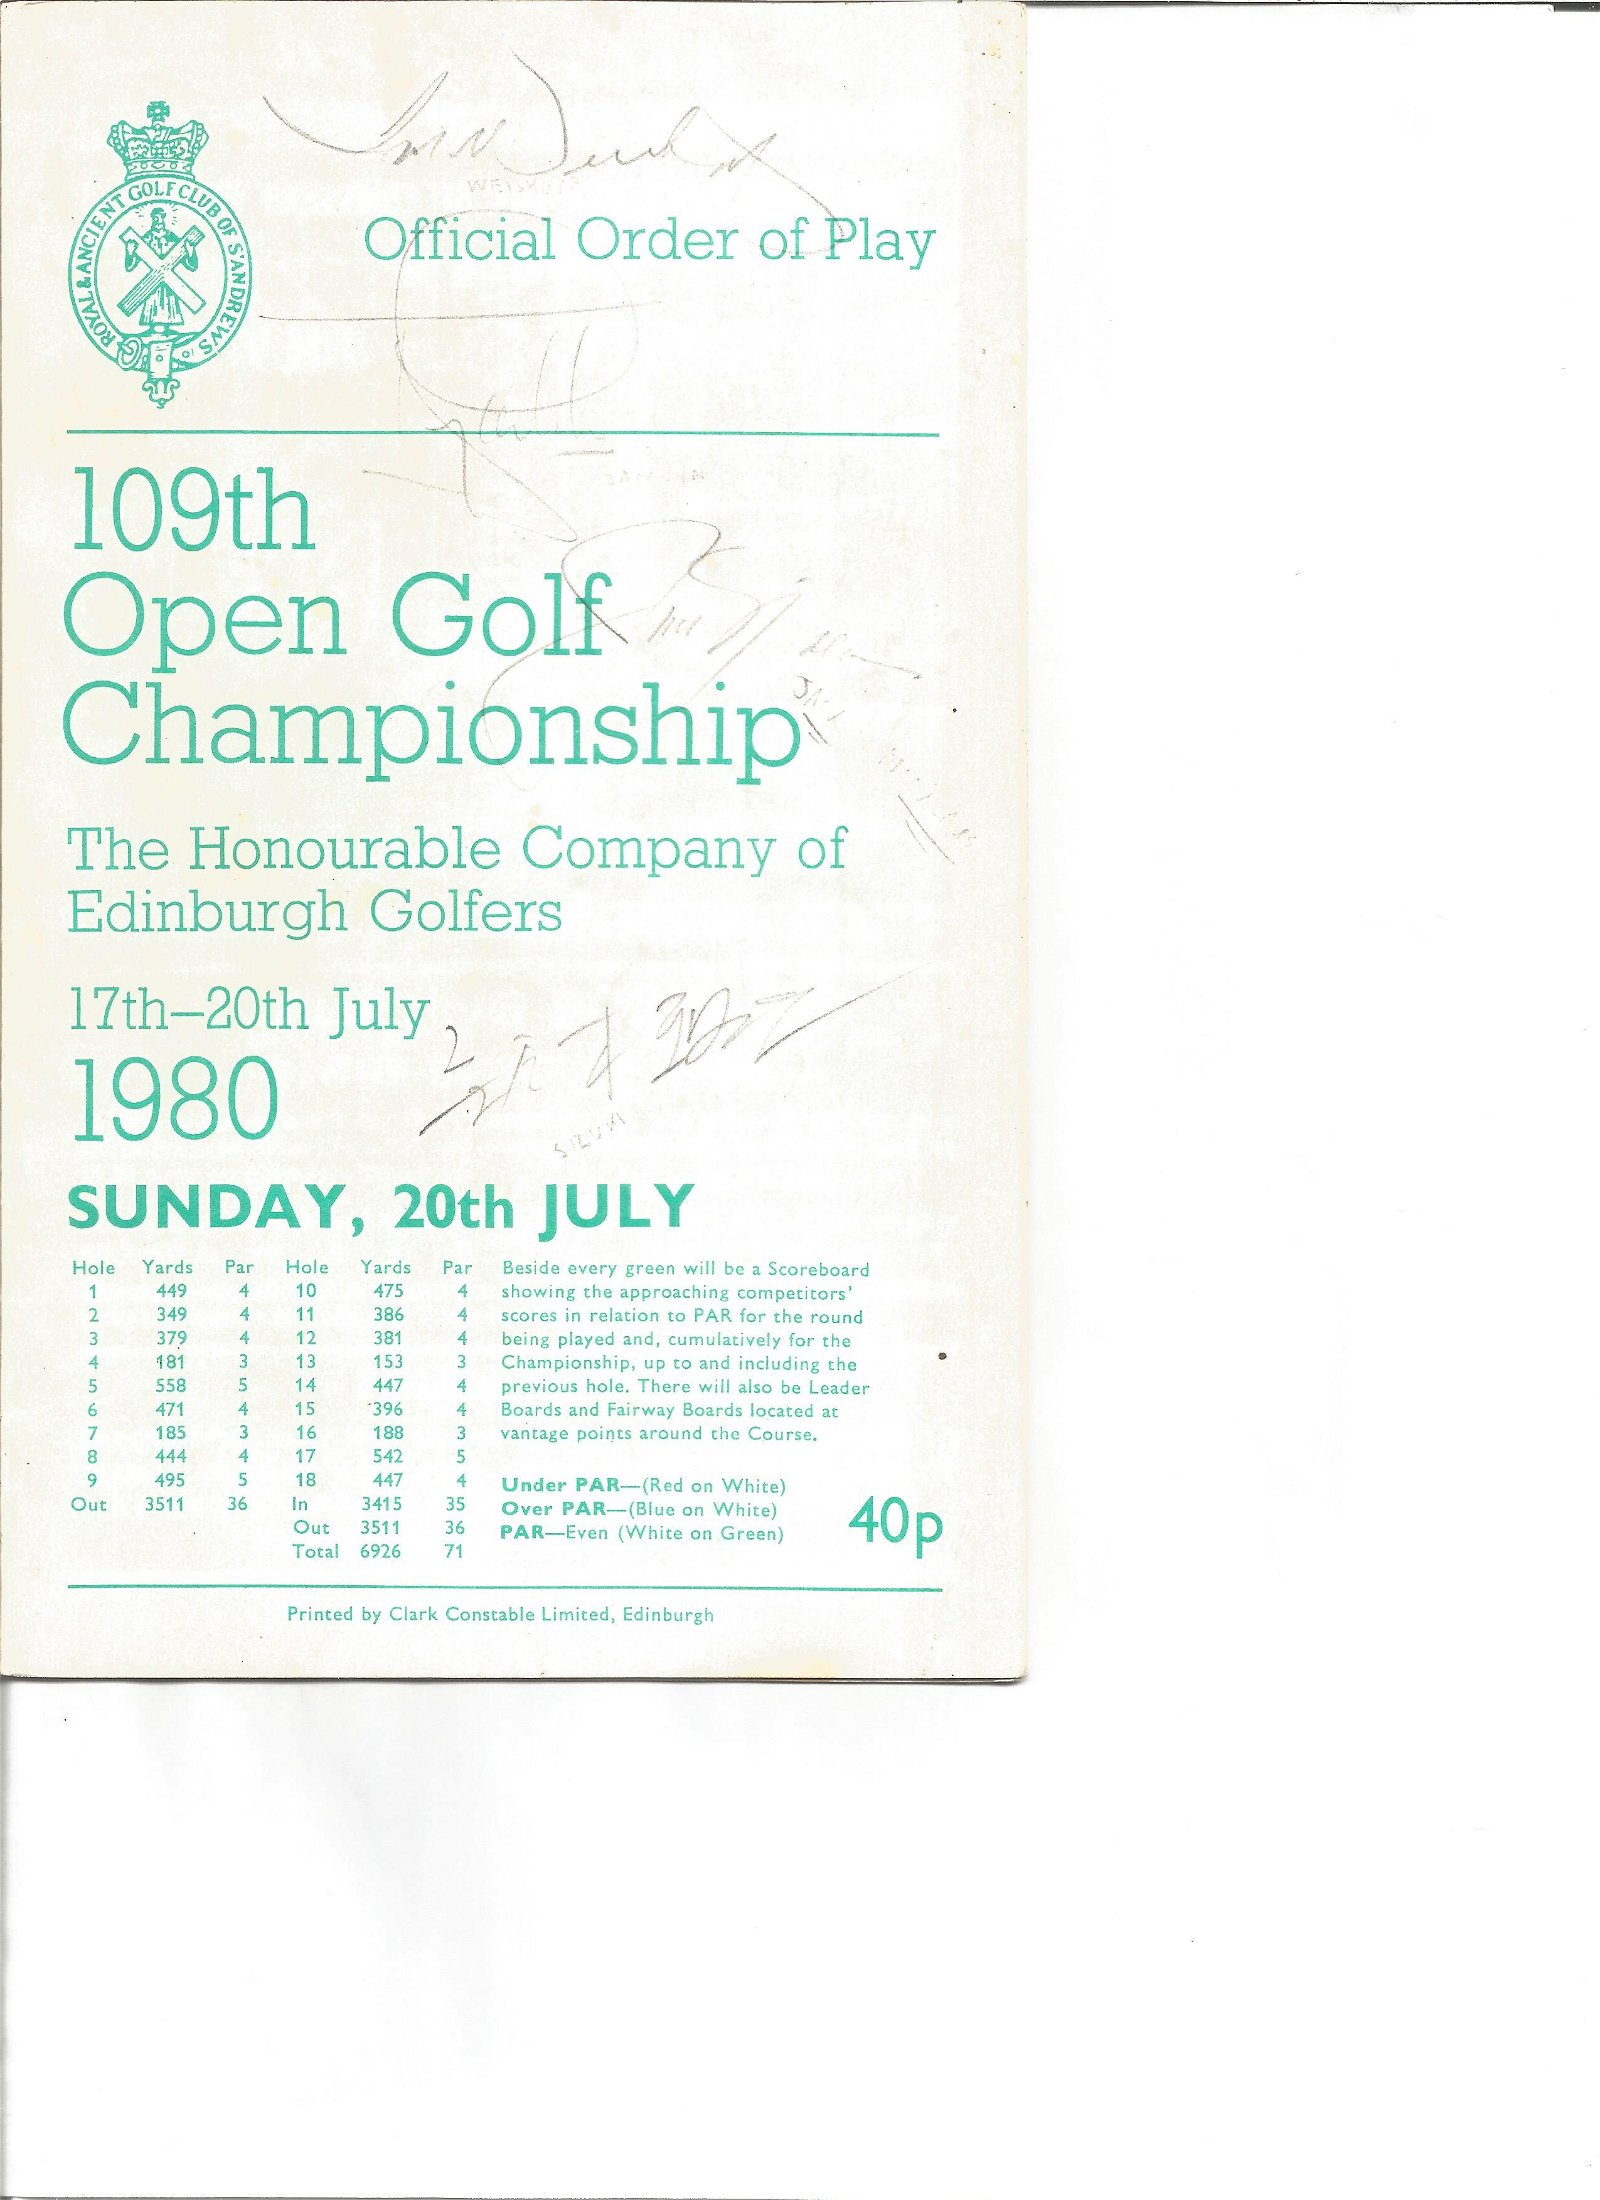 Golf 109th Open Championship Official Order of Play